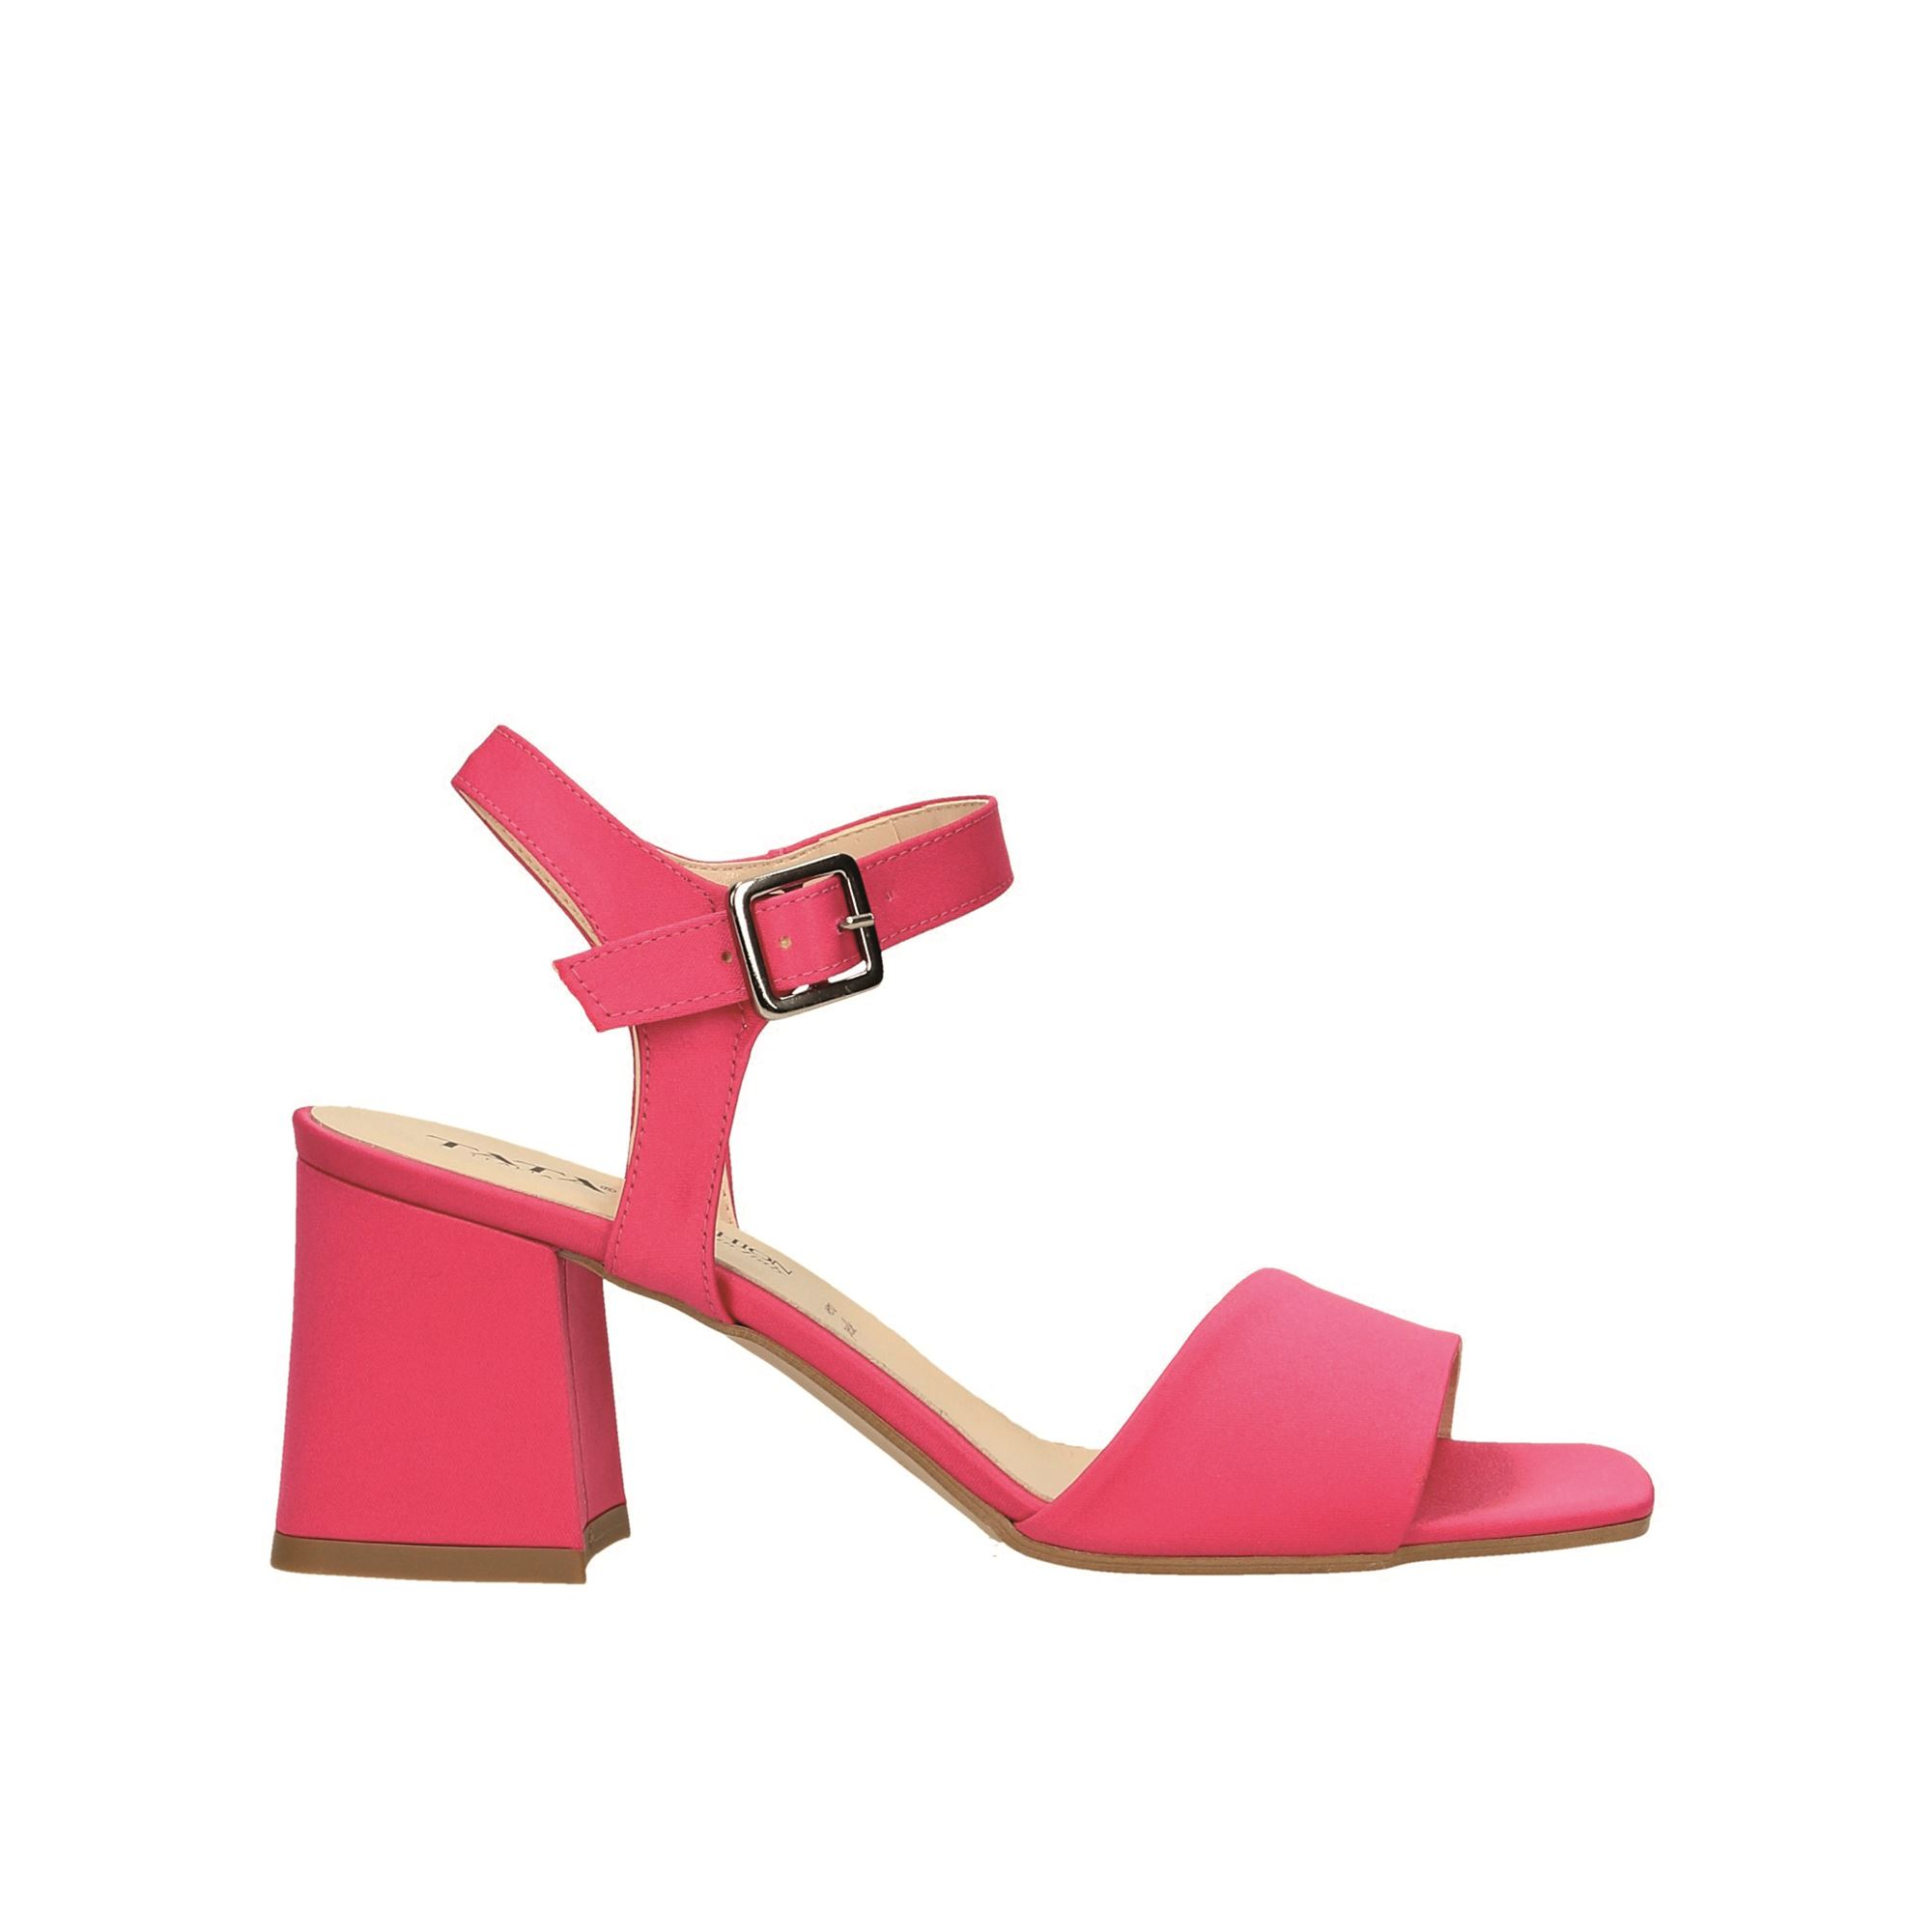 Tata Italia Shoes Woman Sandali Fuxia 961